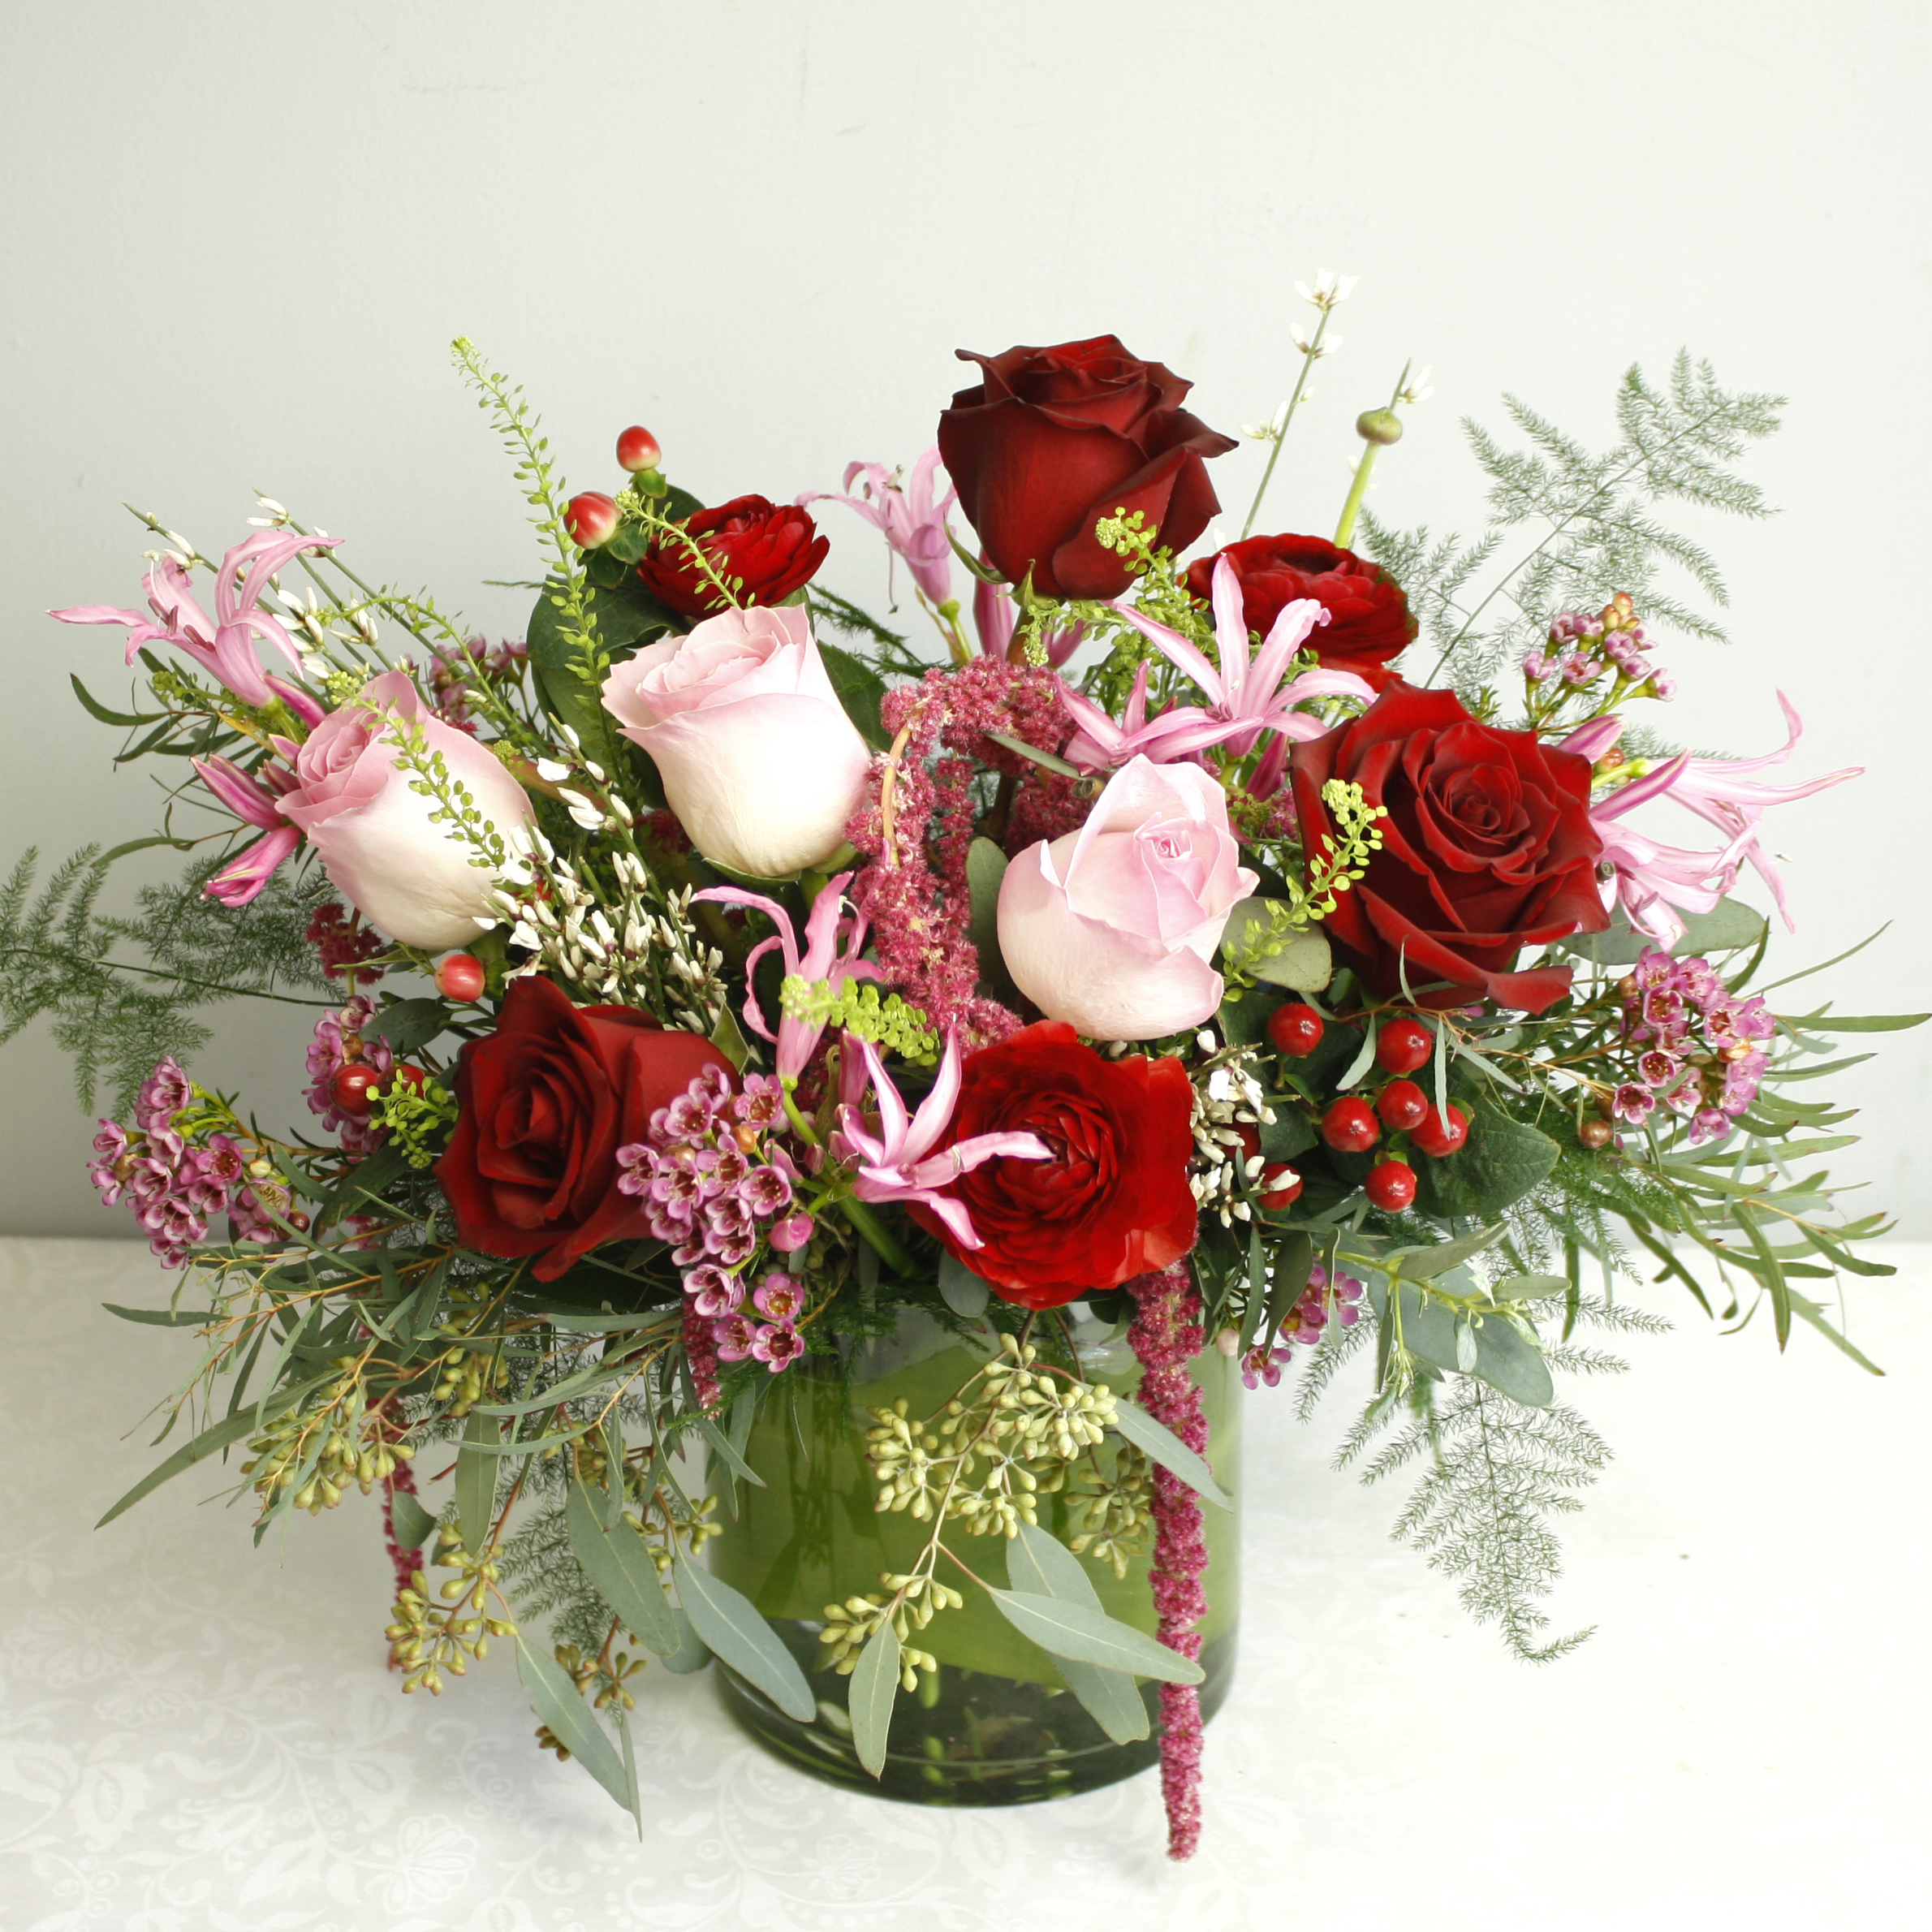 English Manor - styled on vintage english gardens this charming floral piece is perfect for any floral lover! Featuring Roses, Ranunculus, Amaranthus, and more!